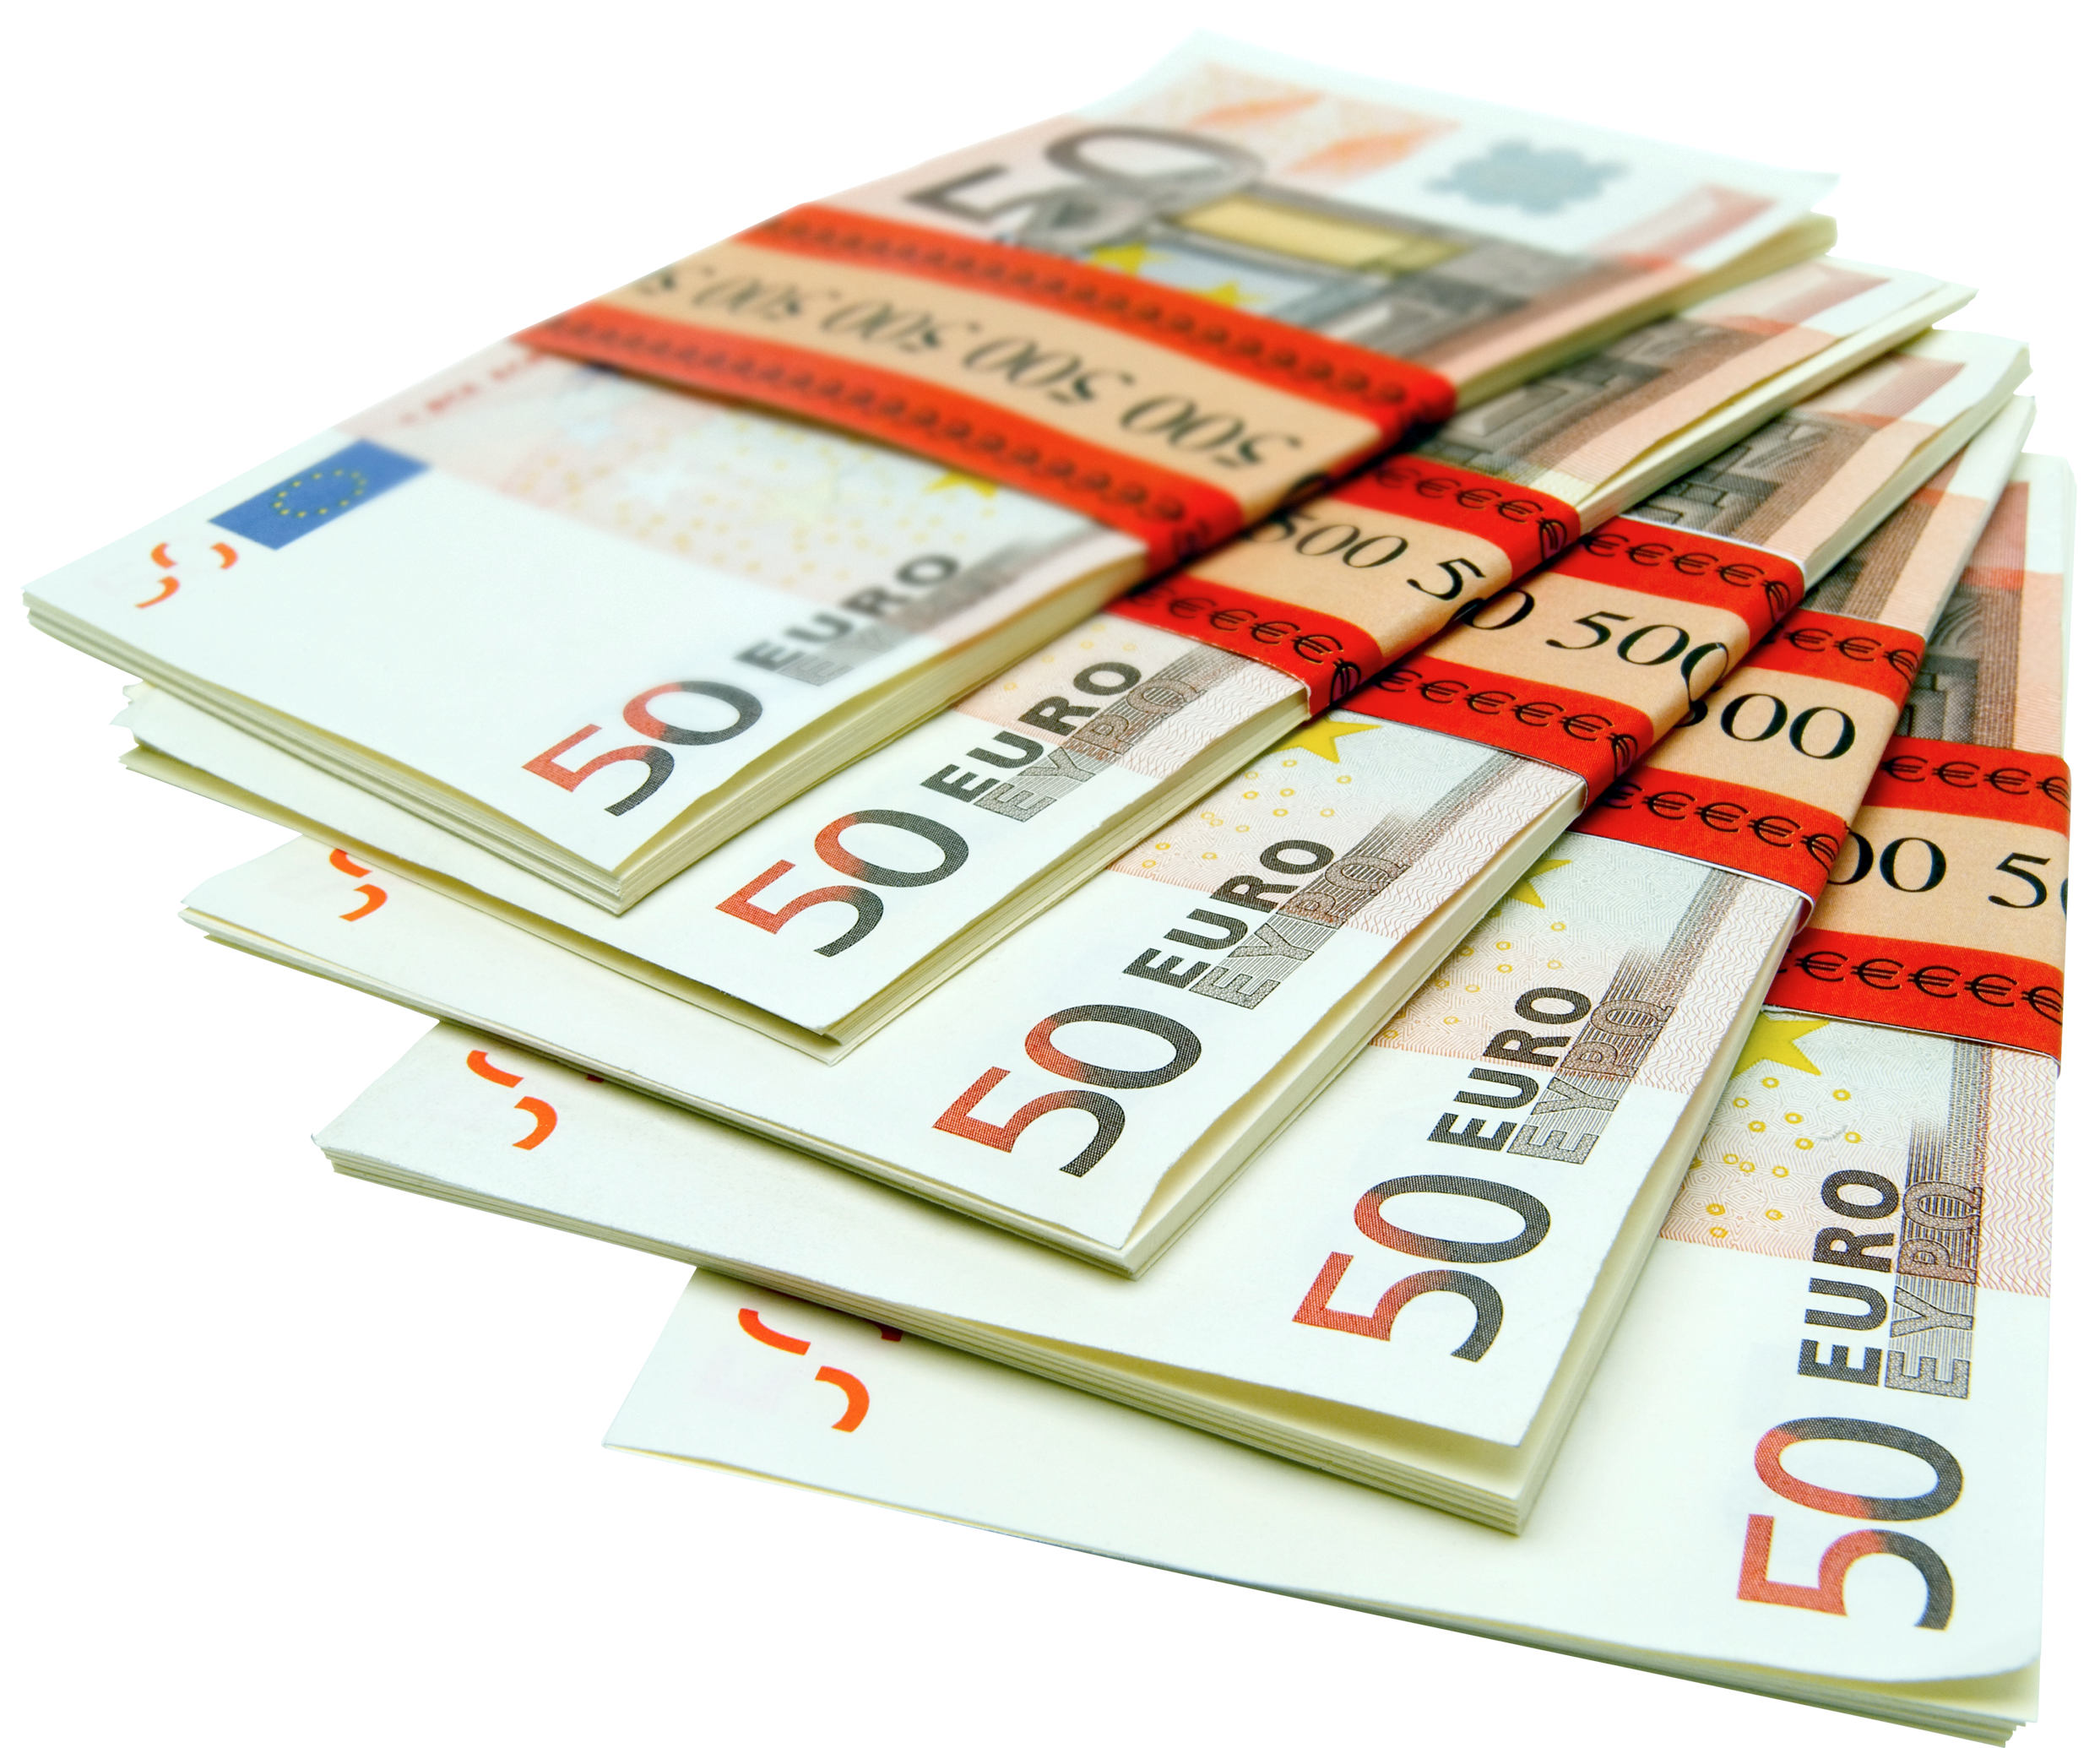 Bundles of money clipart graphic library library Bundles Euro PNG Picture | Gallery Yopriceville - High-Quality ... graphic library library